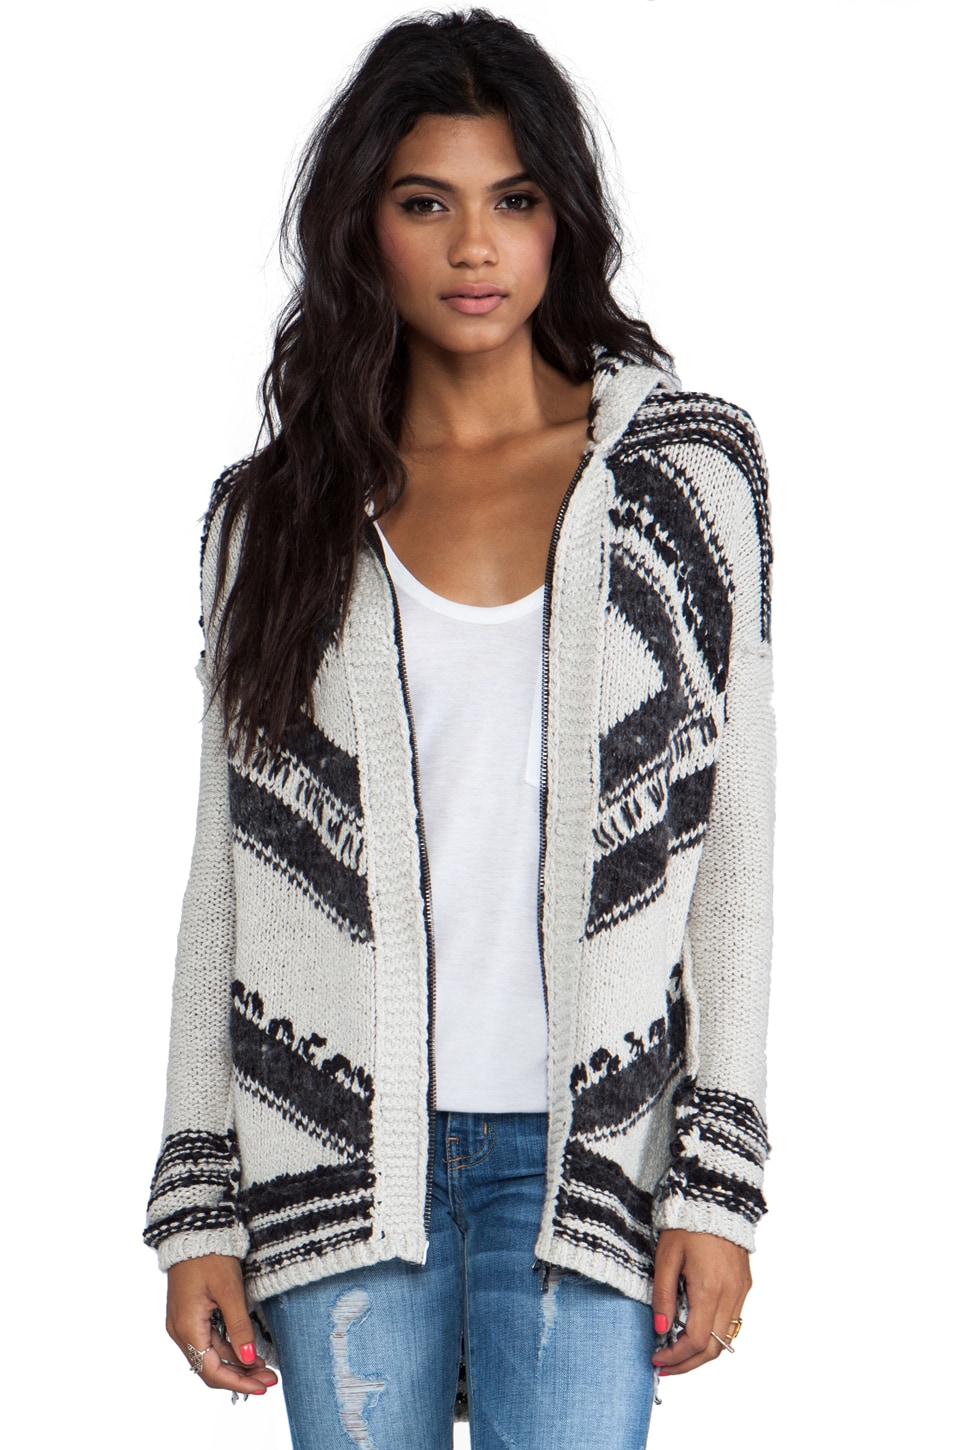 Free People Show Me the Way Fringe Cardigan in Black/White